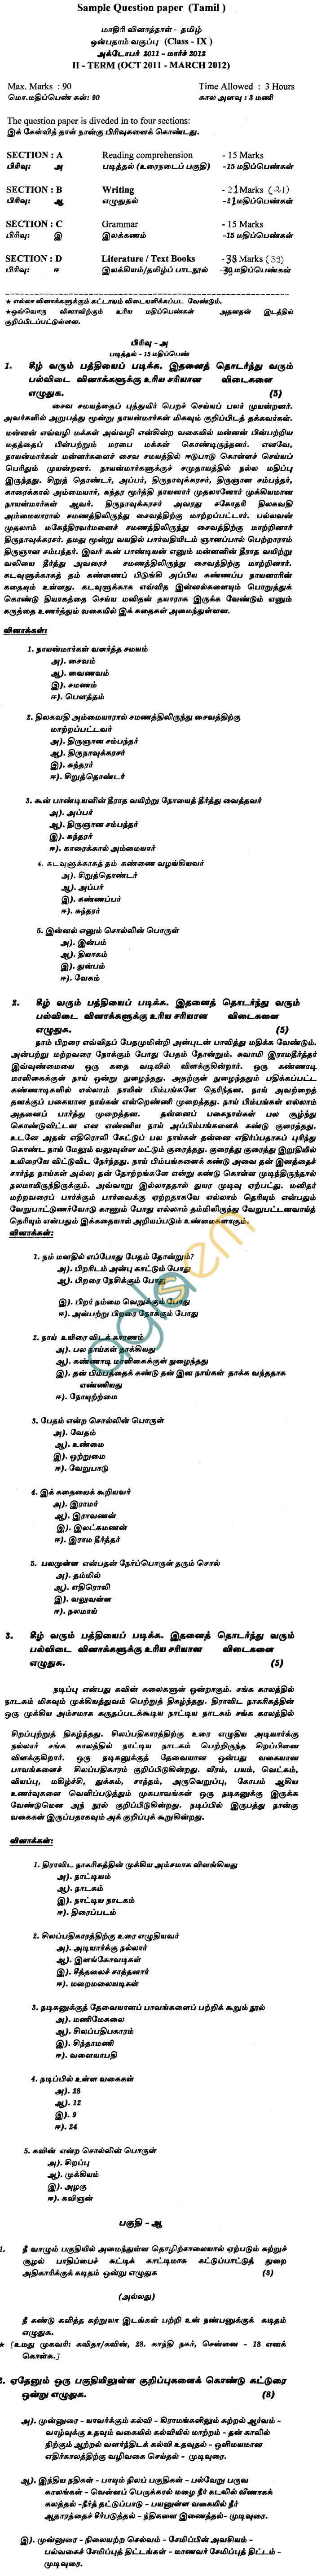 CBSE Class IX & X Sample Papers 2014 (Second Term) Tamil